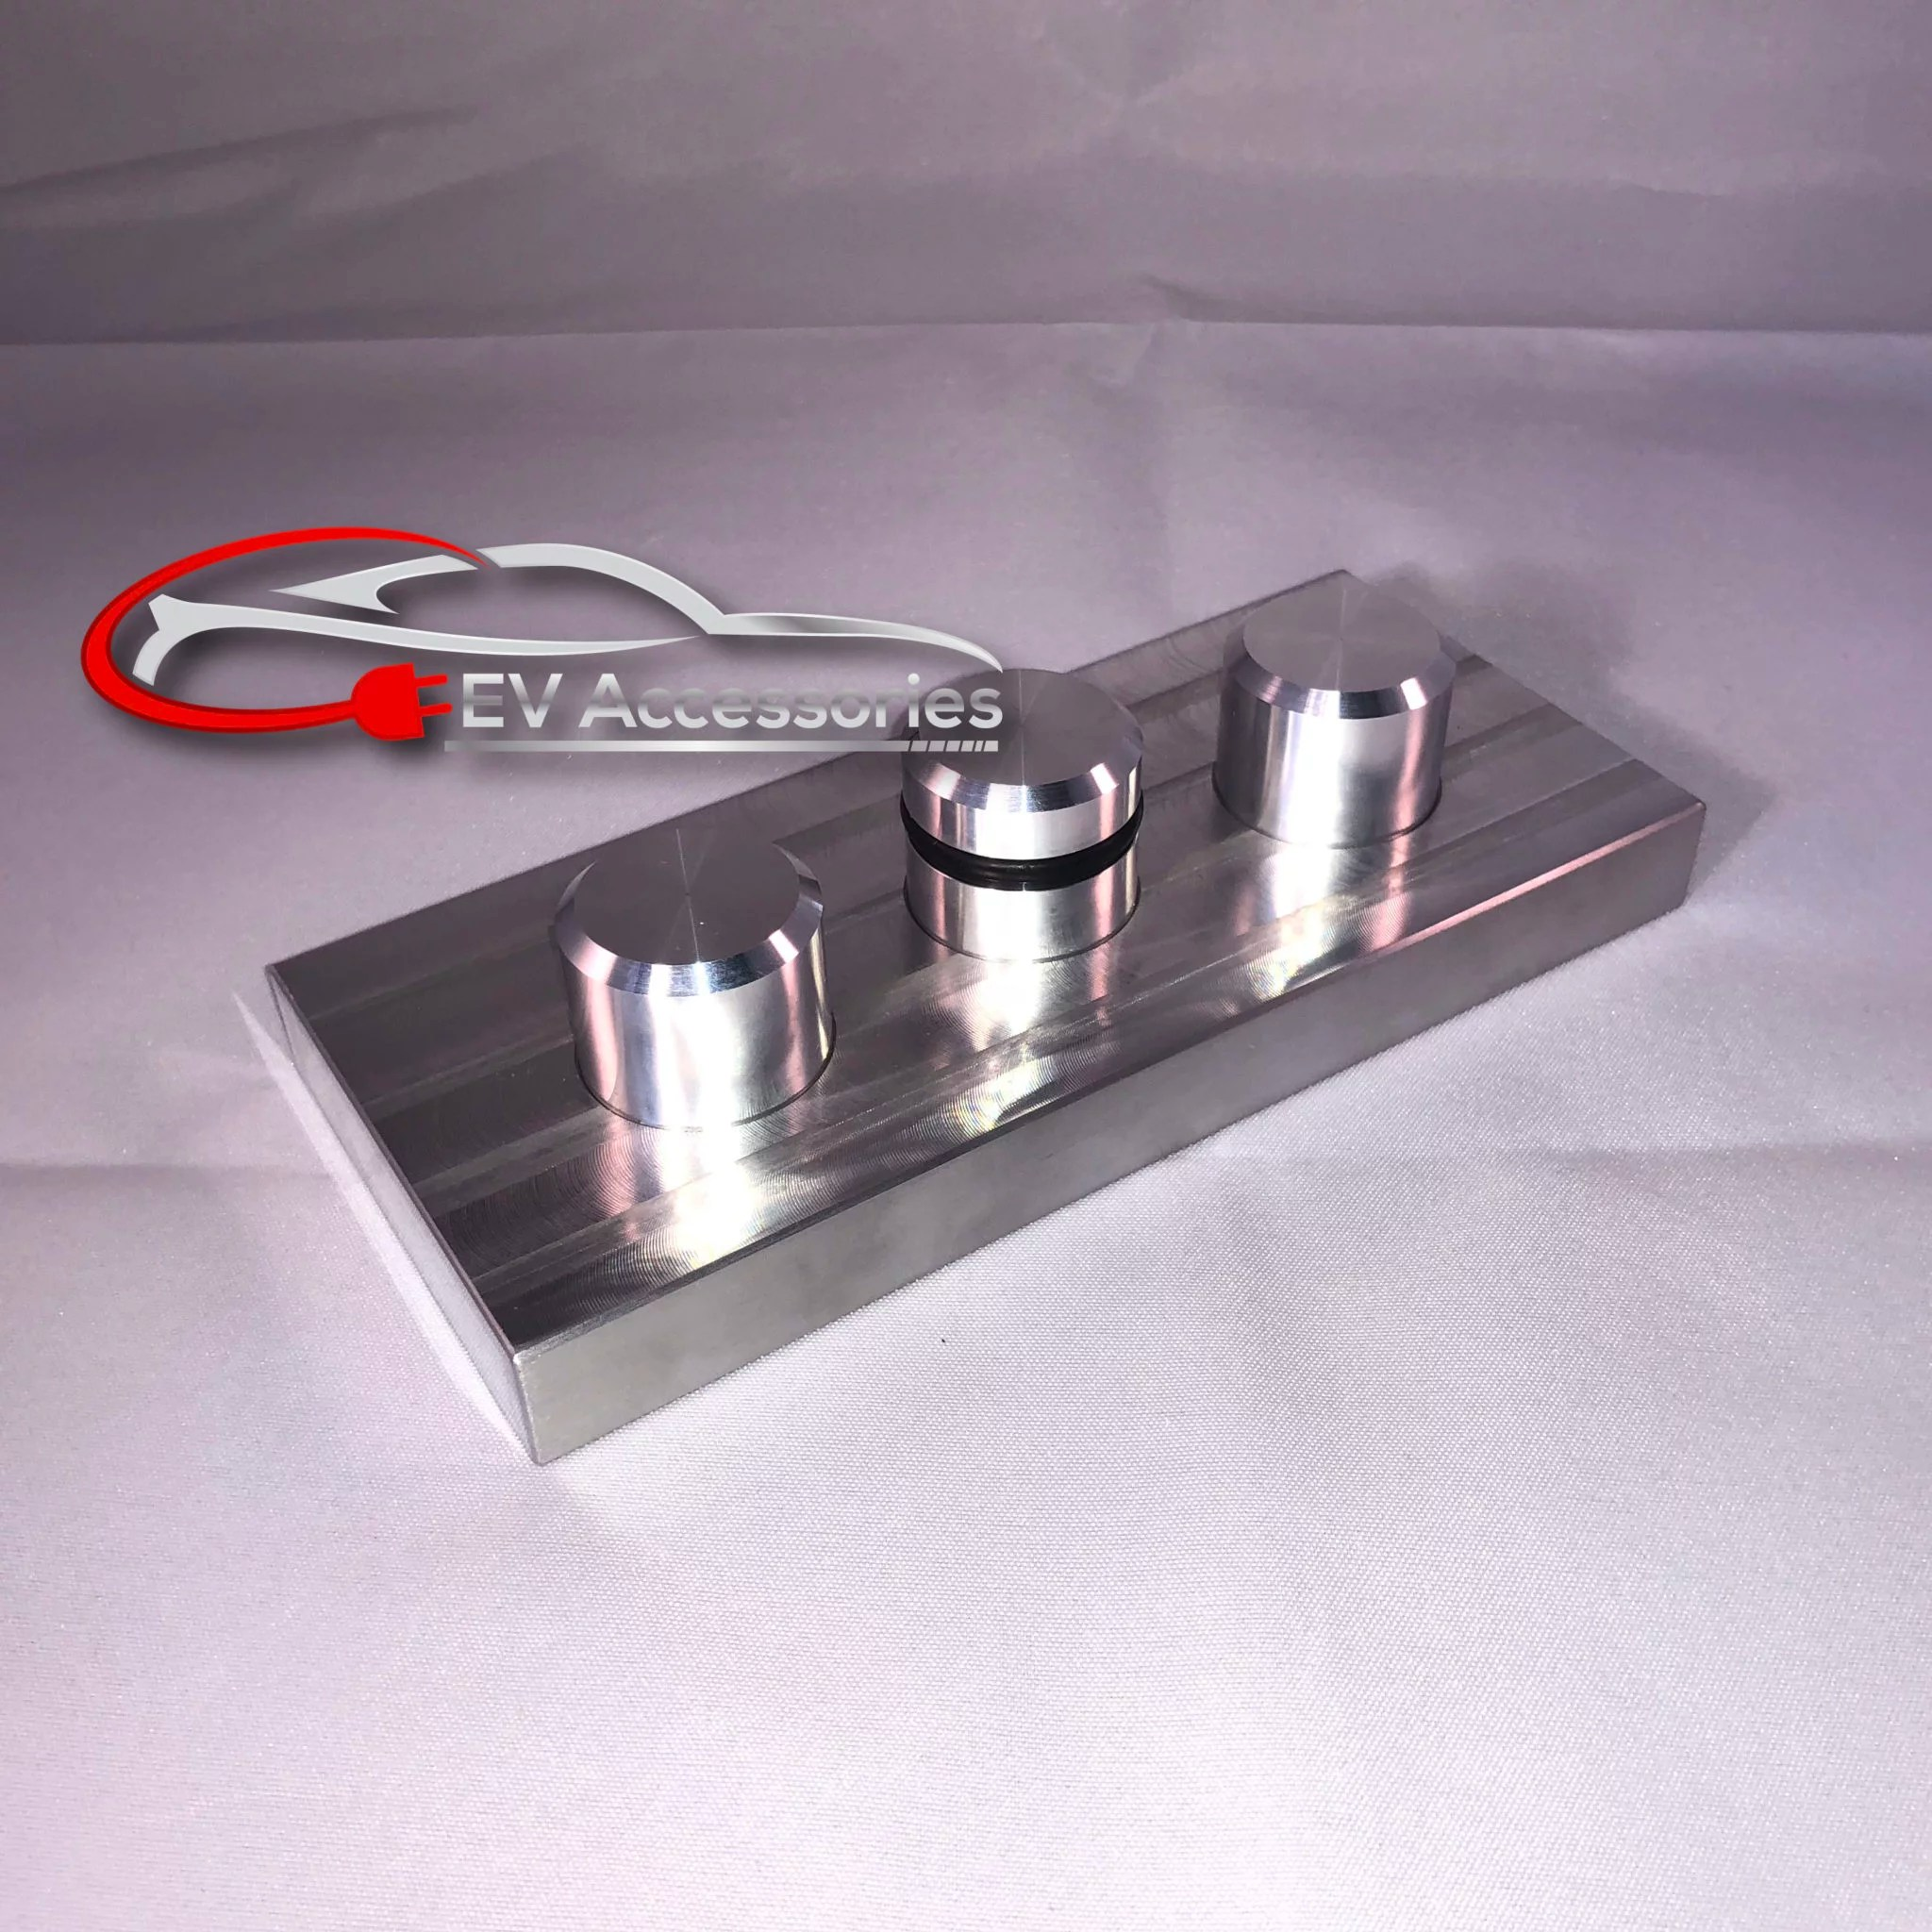 Electric Vehicle Jack Pad Adapter Tools